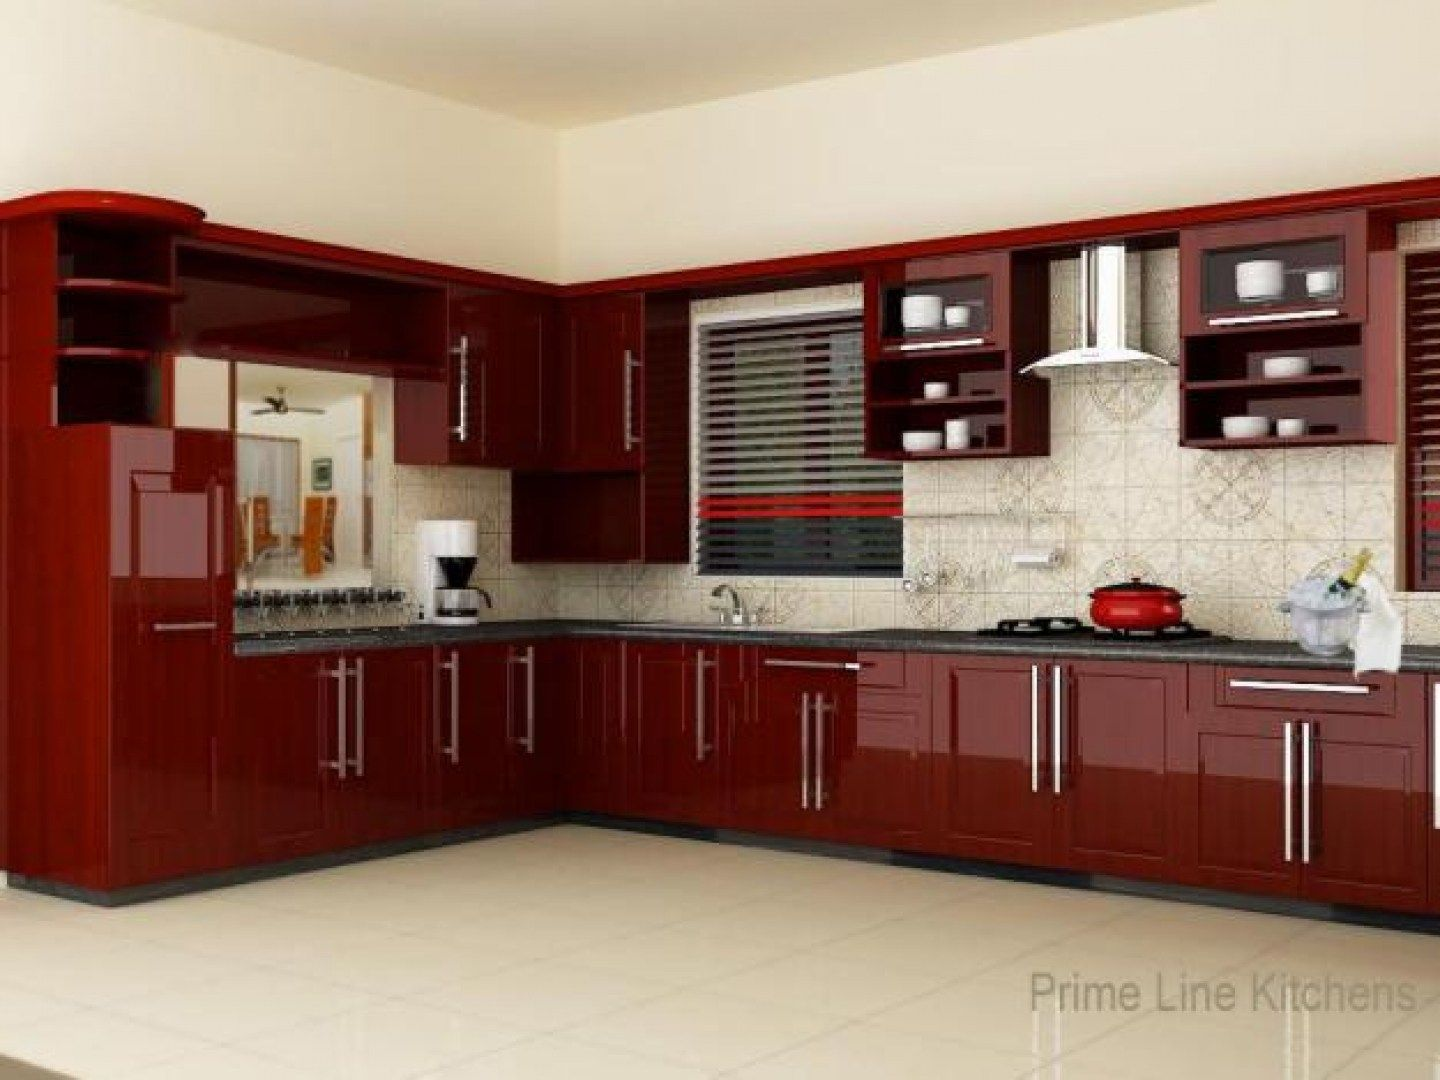 Kitchen design ideas kitchen woodwork designs hyderabad for Kitchen ideaa